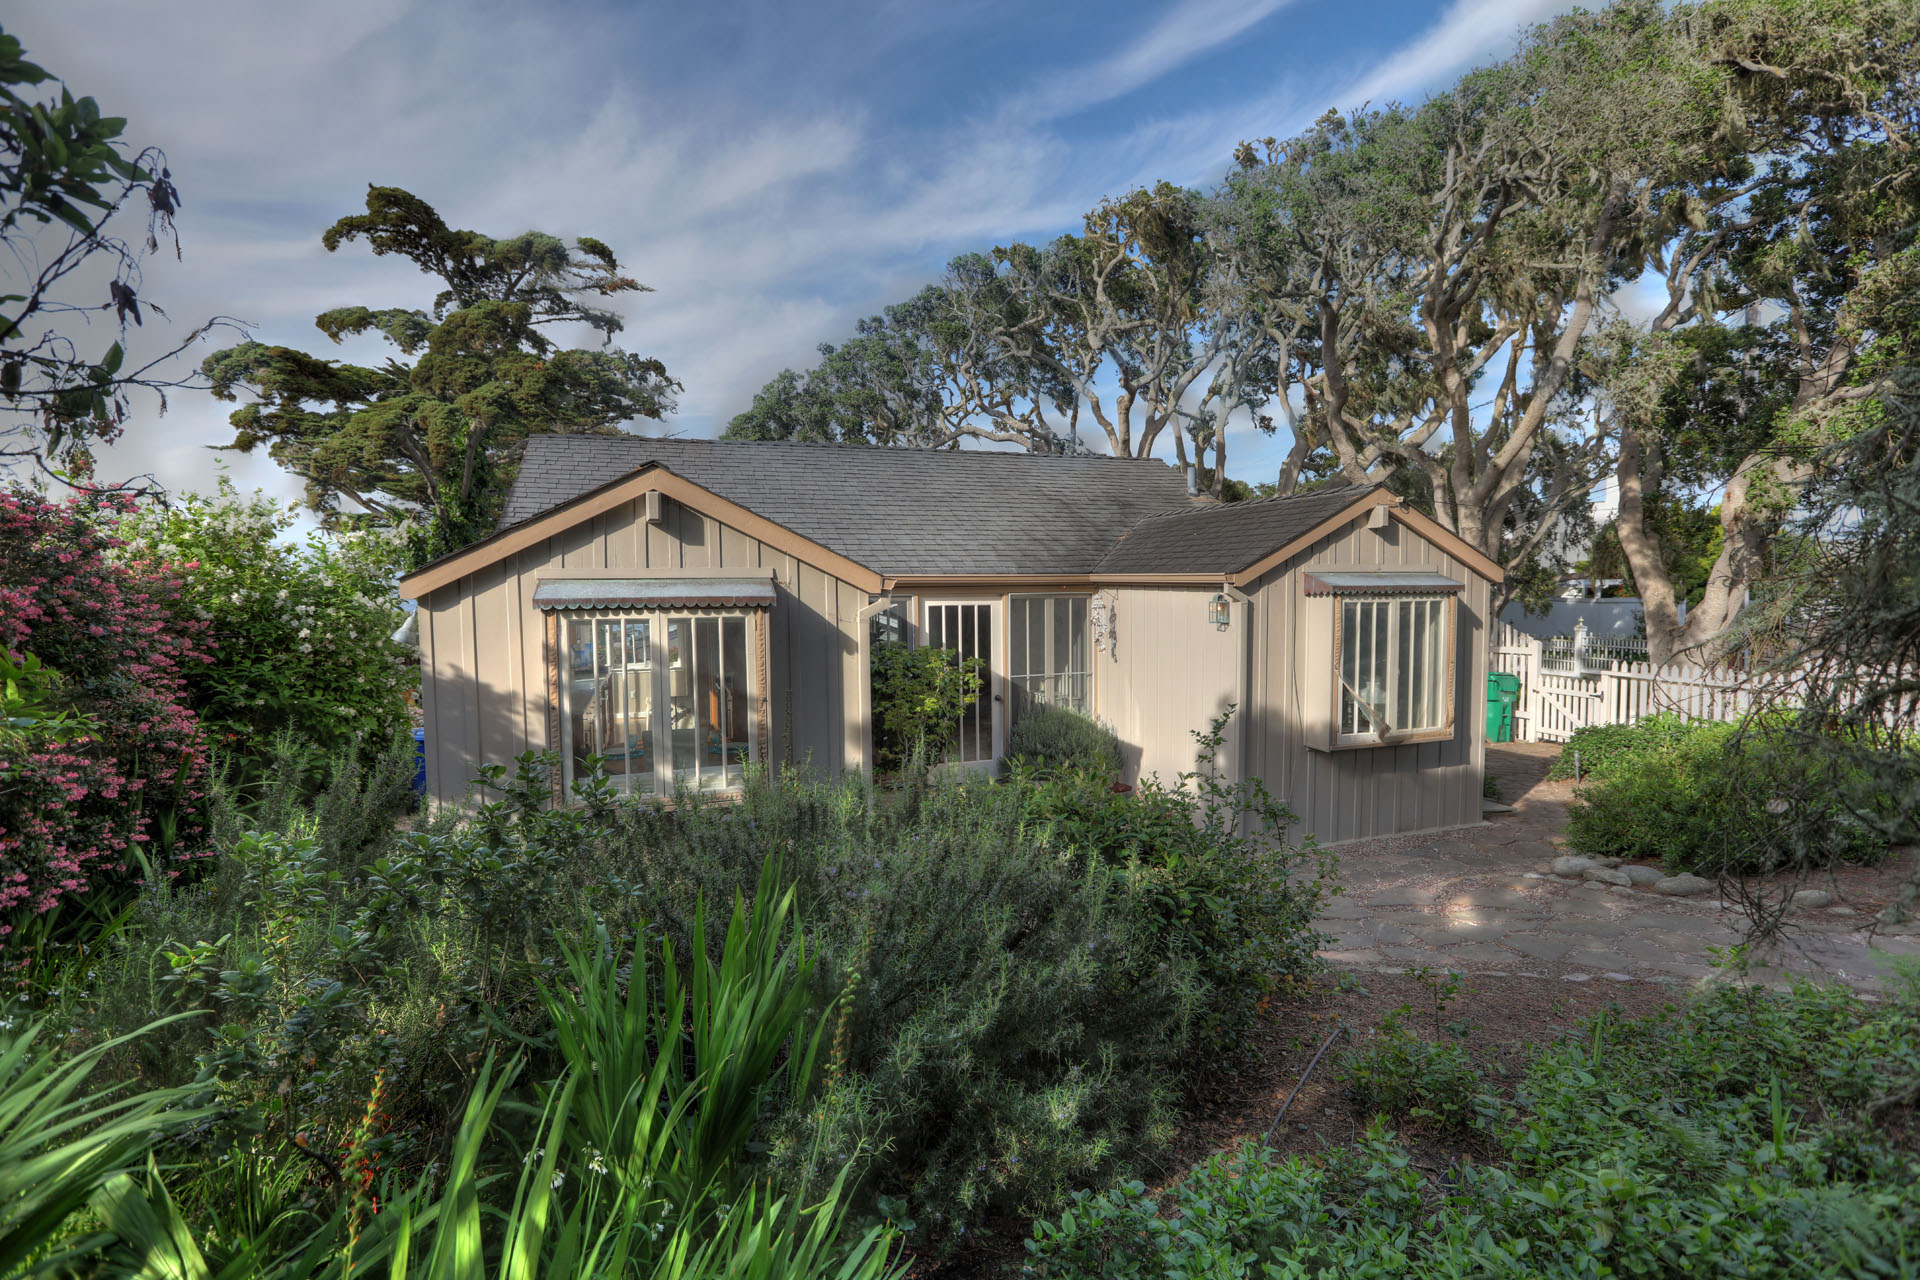 Pacific Grove Ocean View Cottage for sale